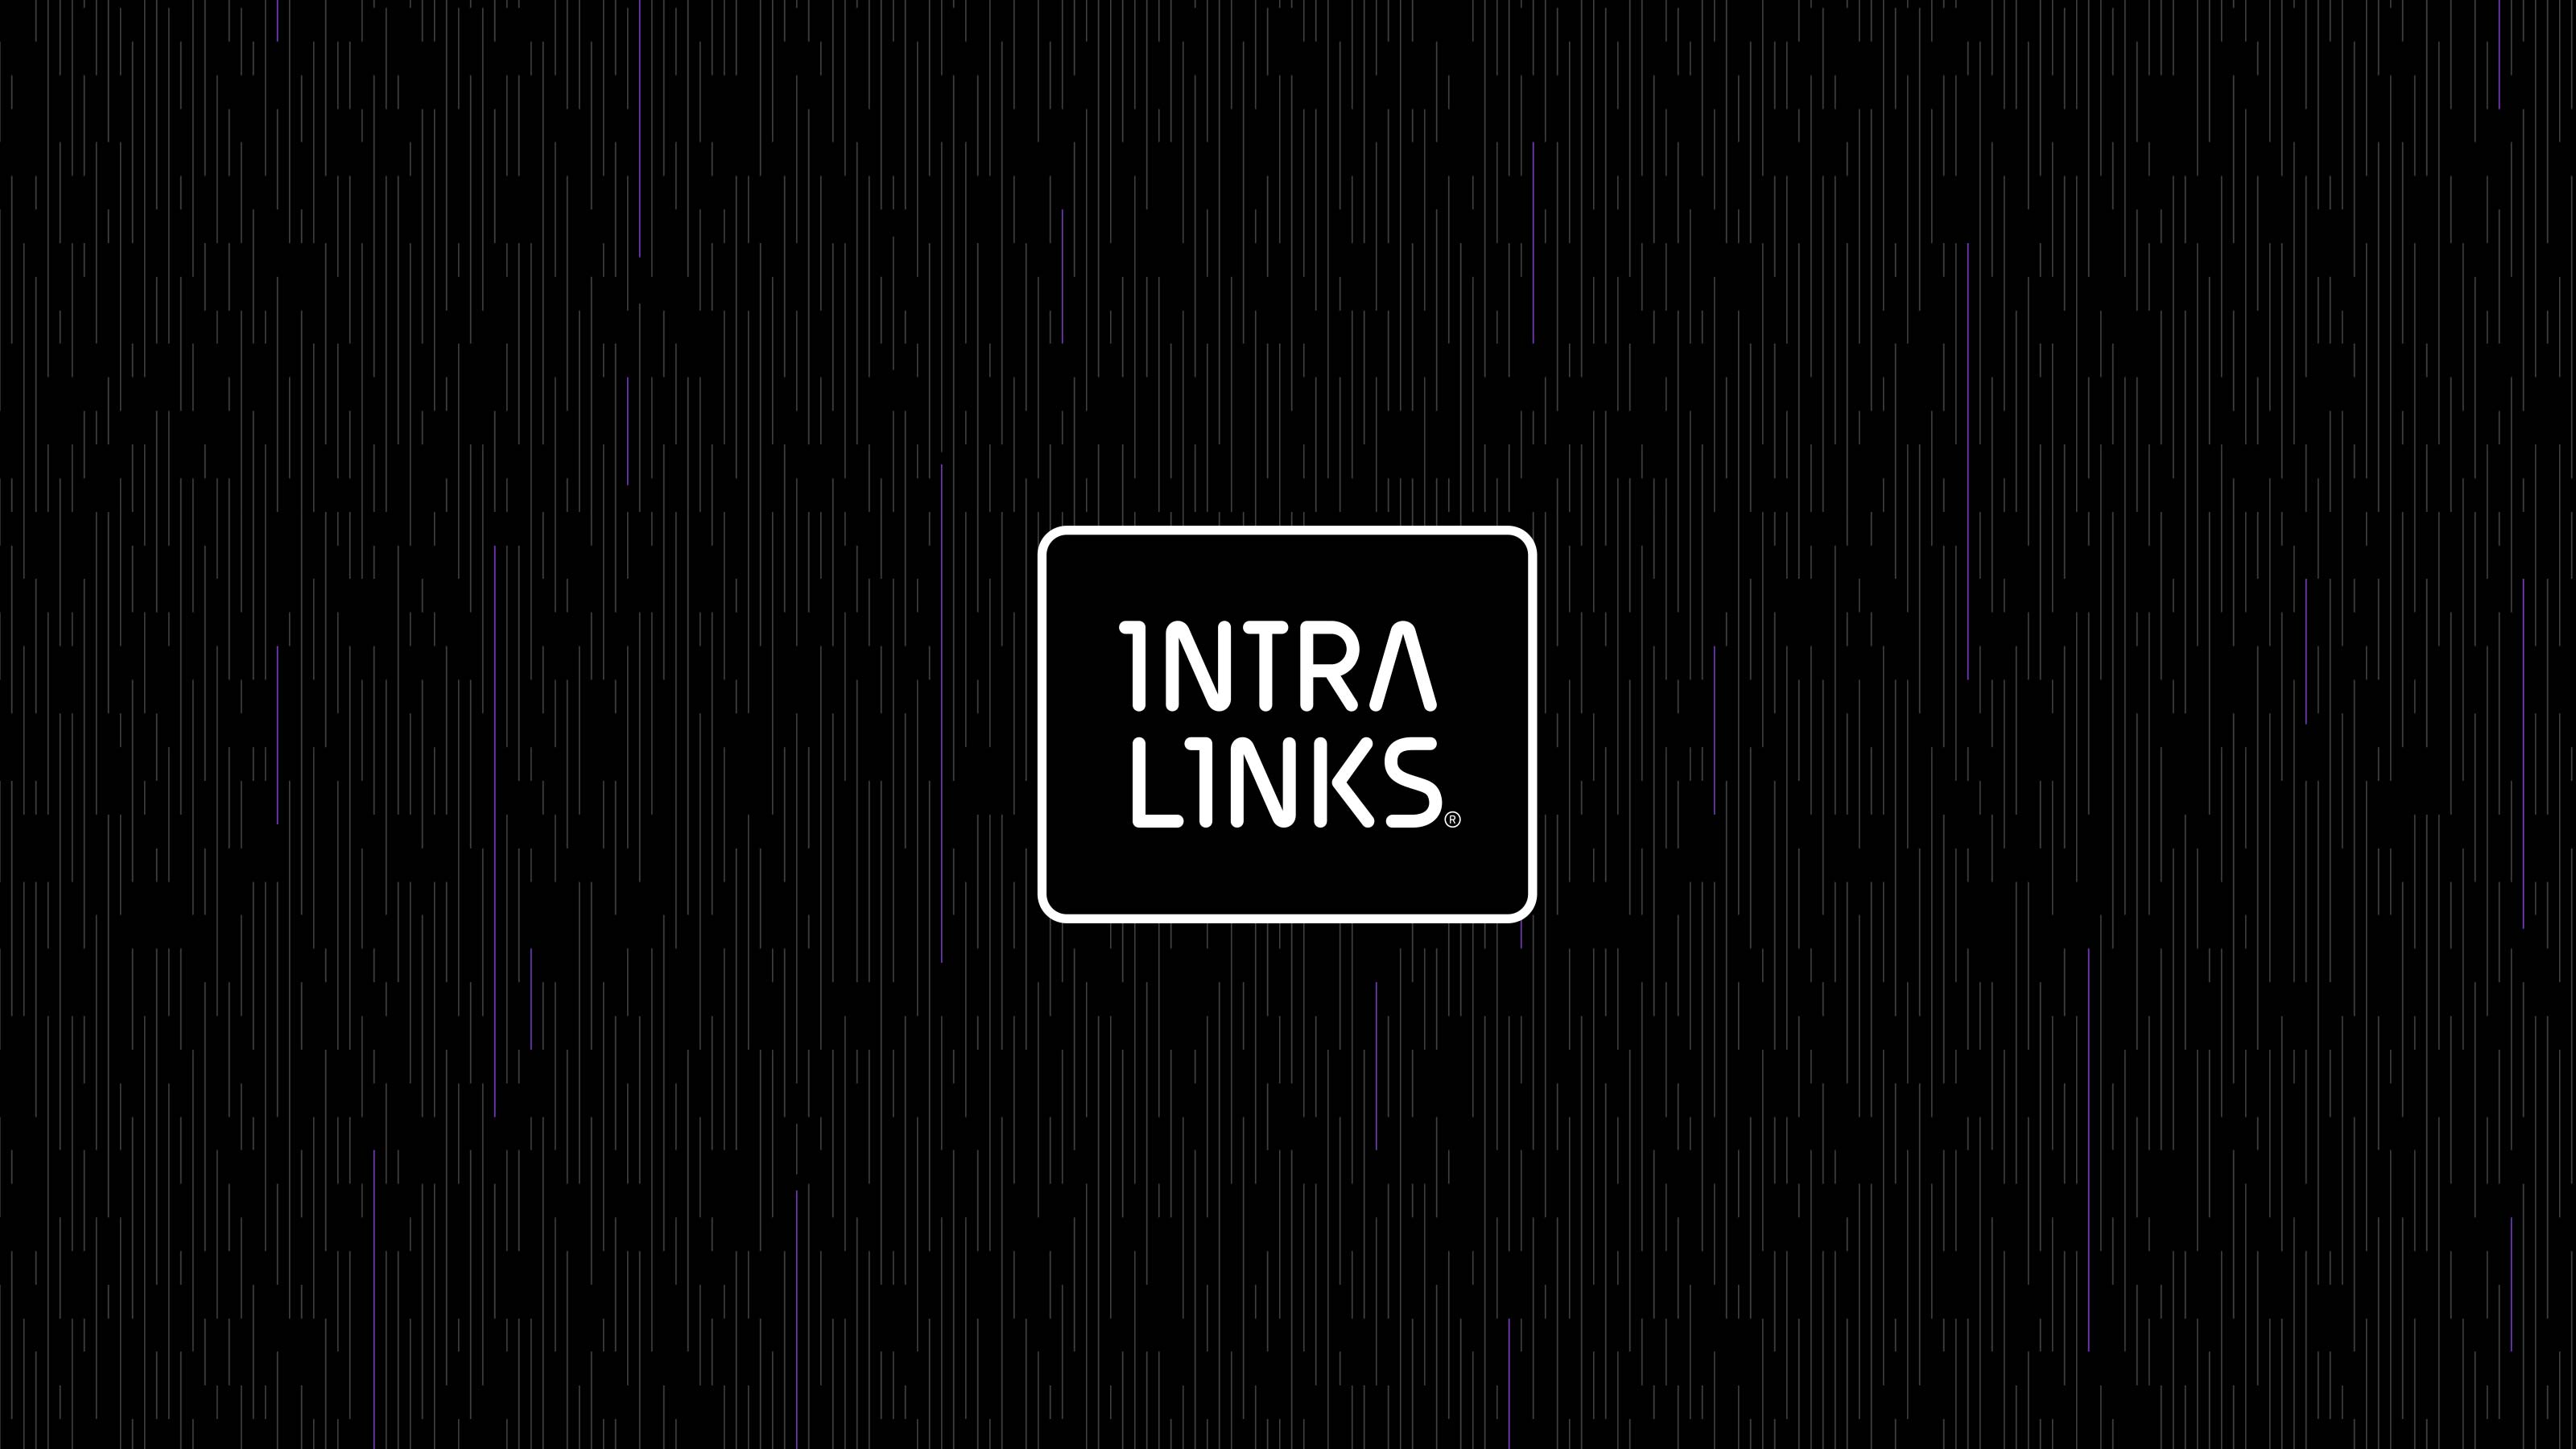 Intralinks_Brand_logo_background